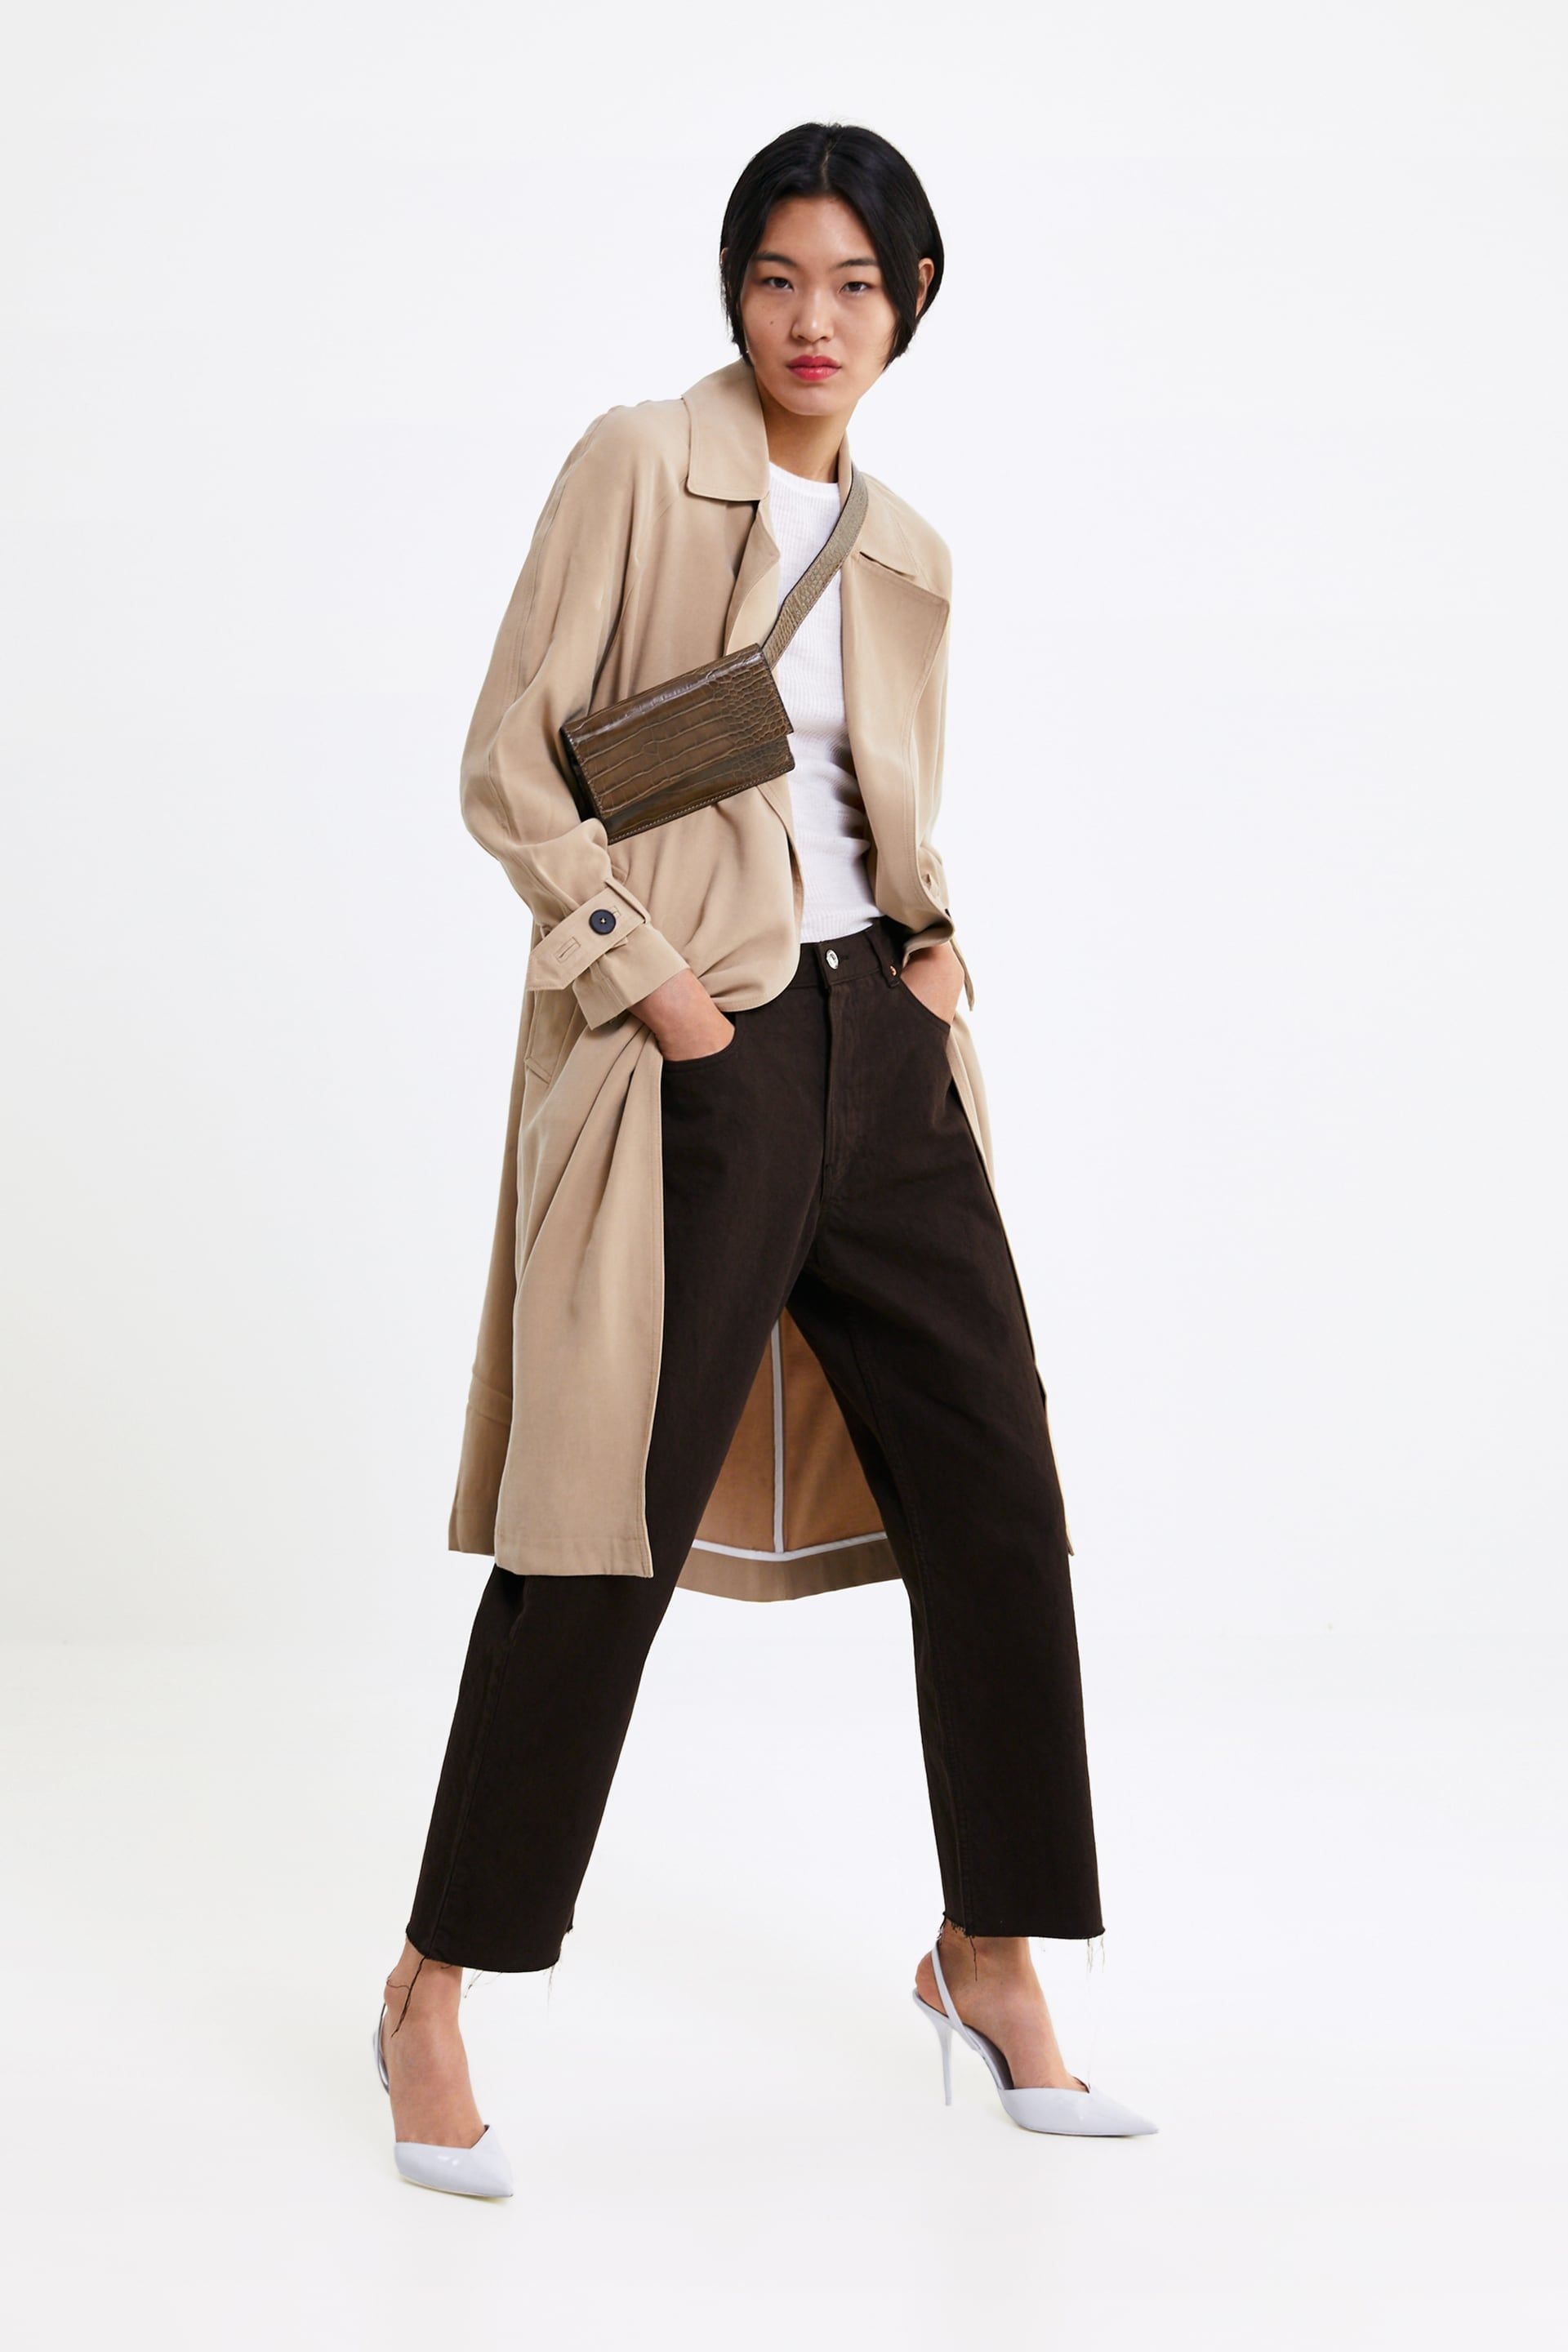 7d5fe1aae0 Flowing trench coat with pockets in 2019 | clothes Mar '19 | Coat ...